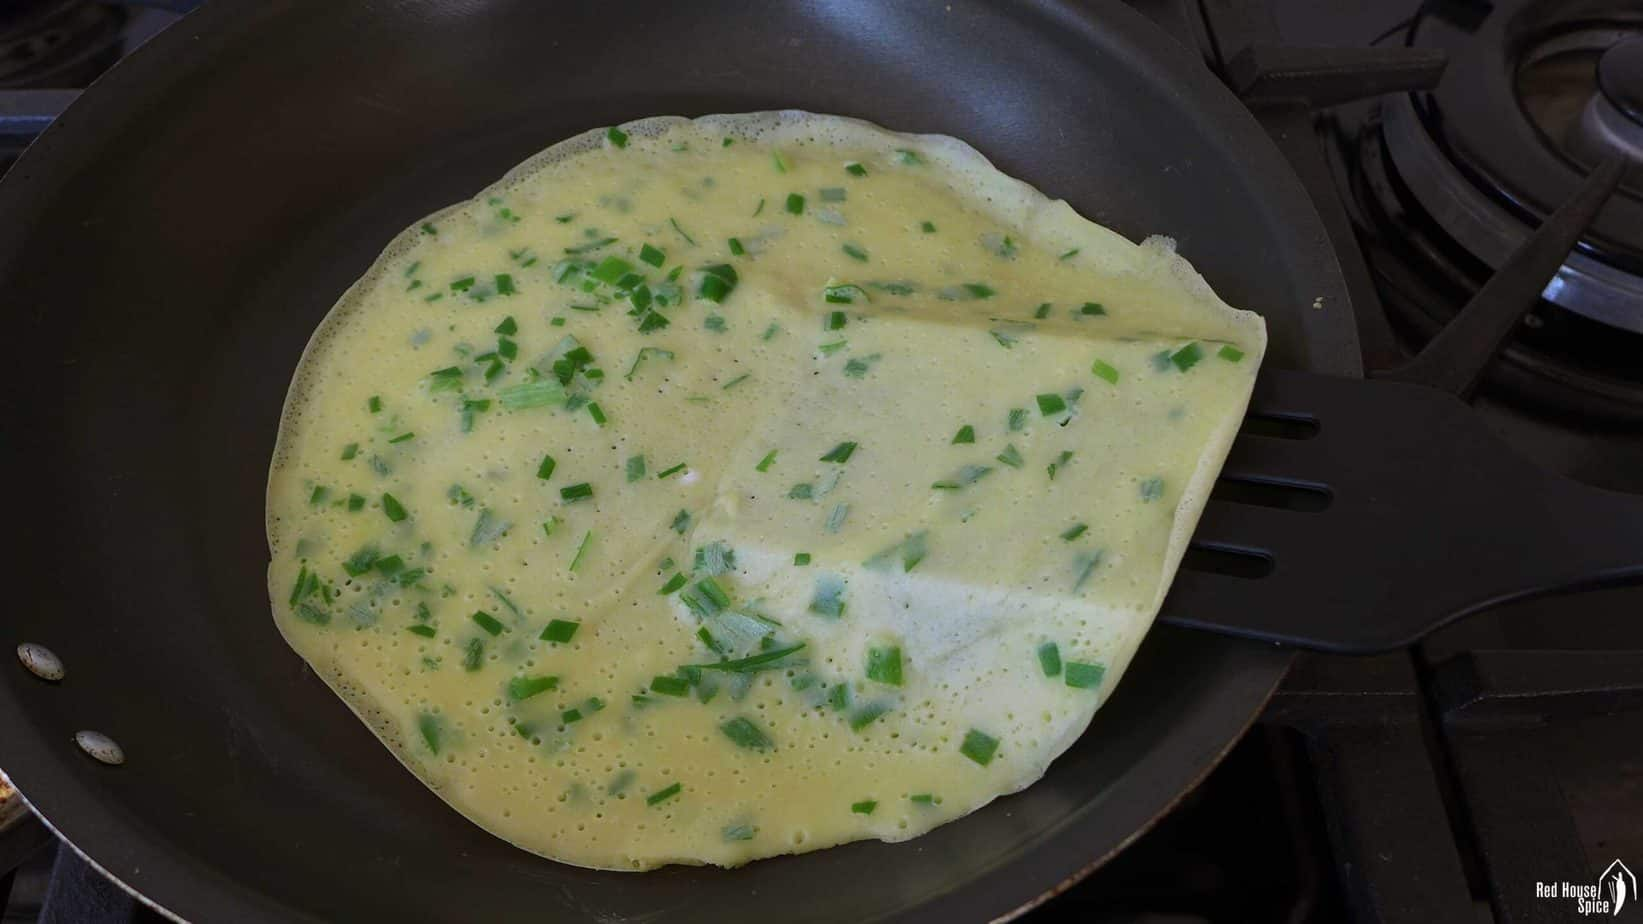 An egg crepe in a frying pan